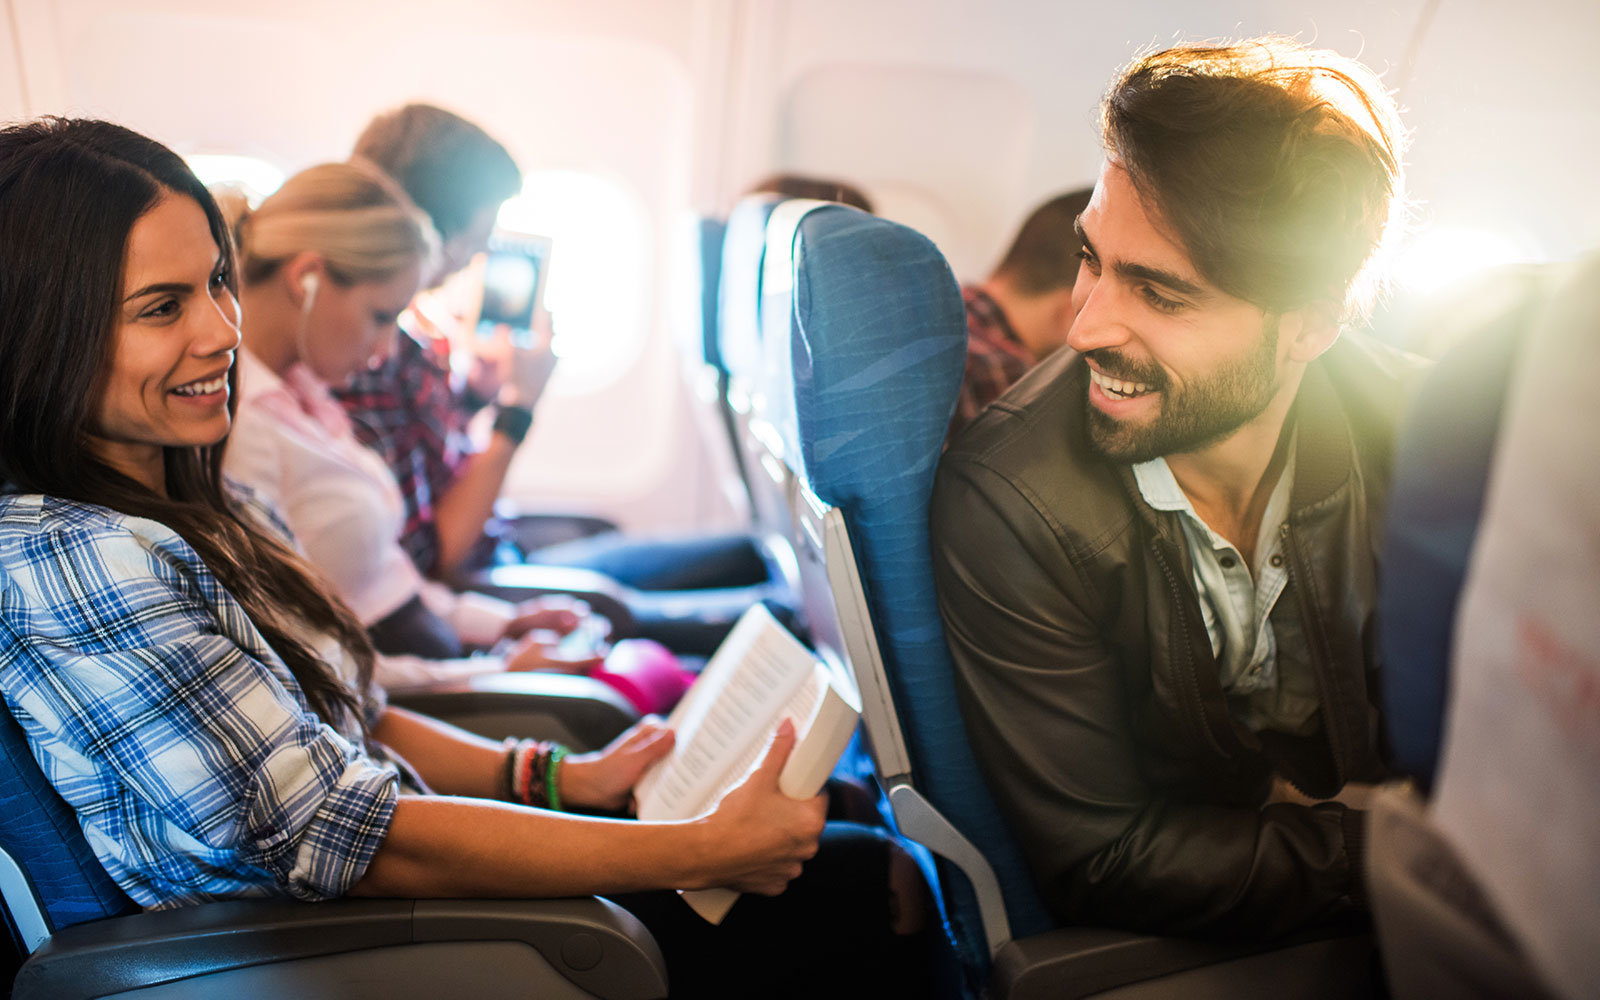 Airline dating sites